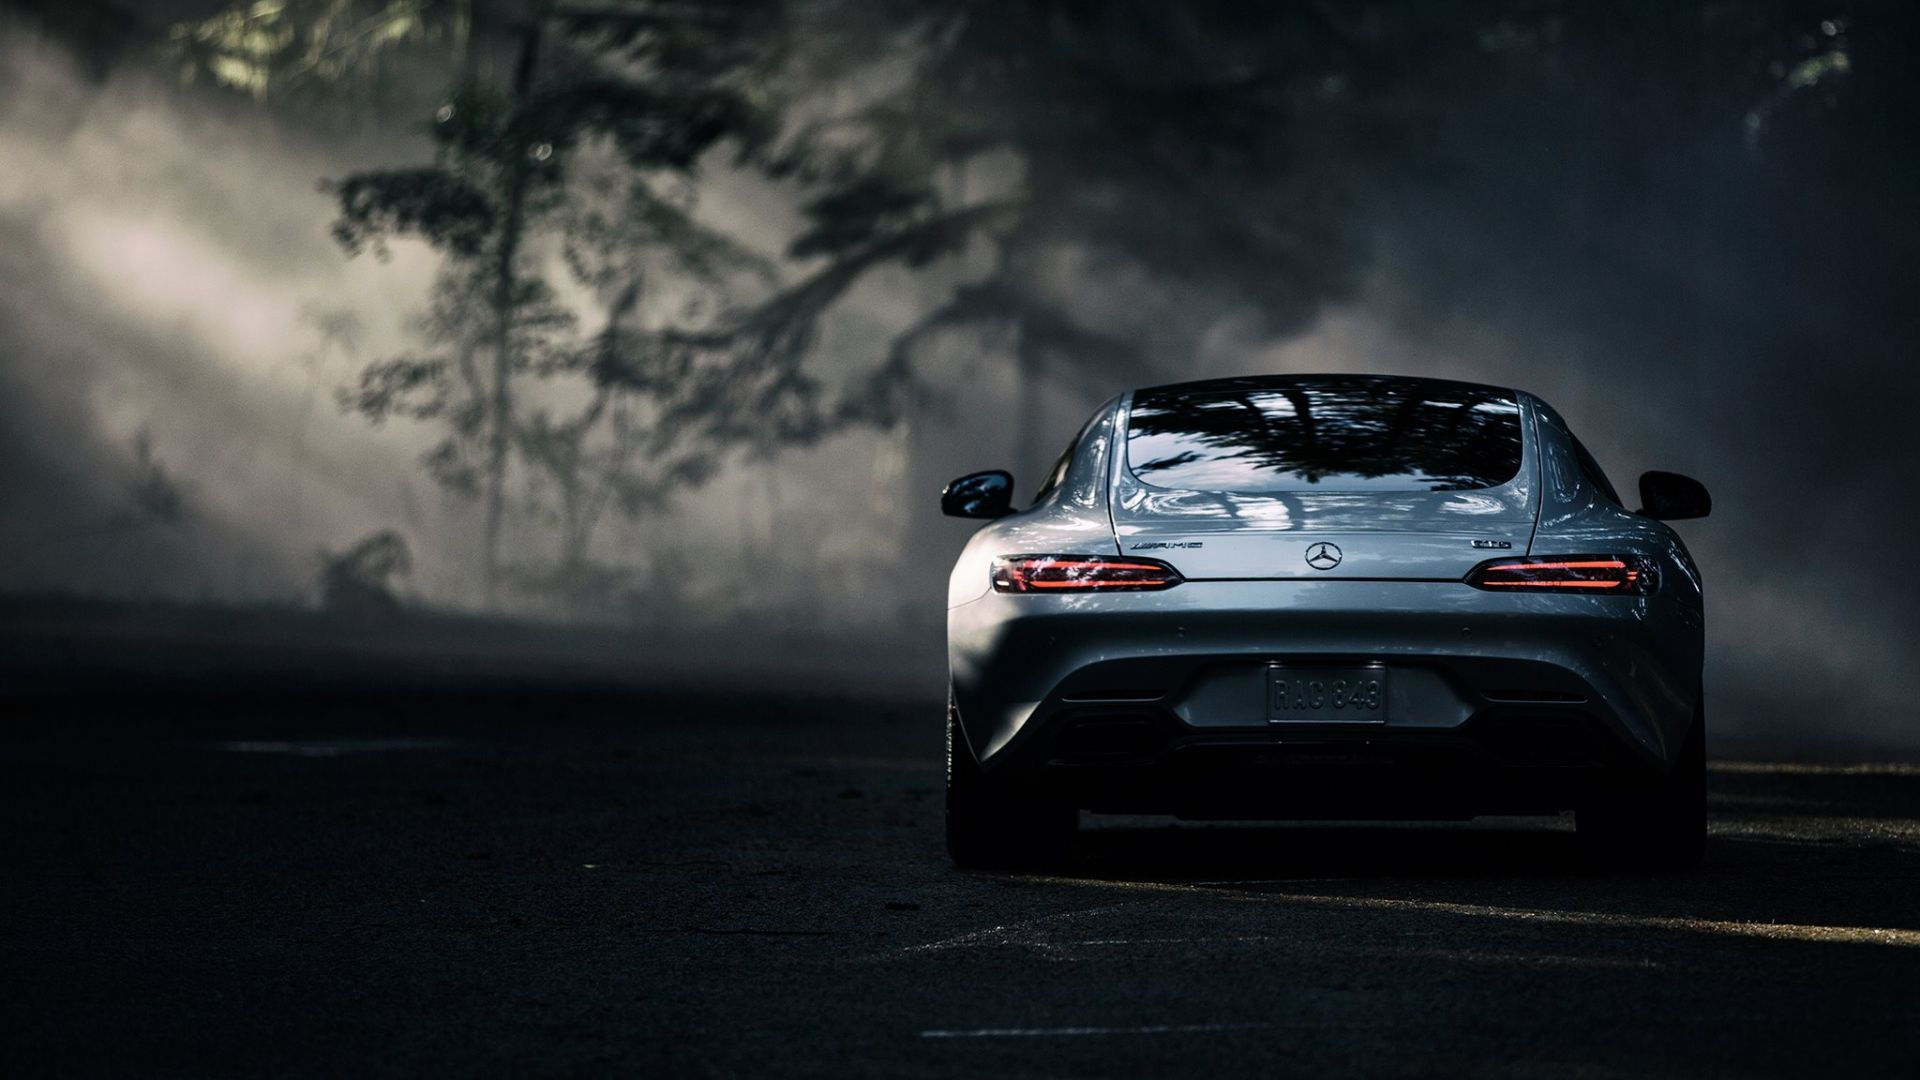 Uses of Mercedes AMG Wallpaper